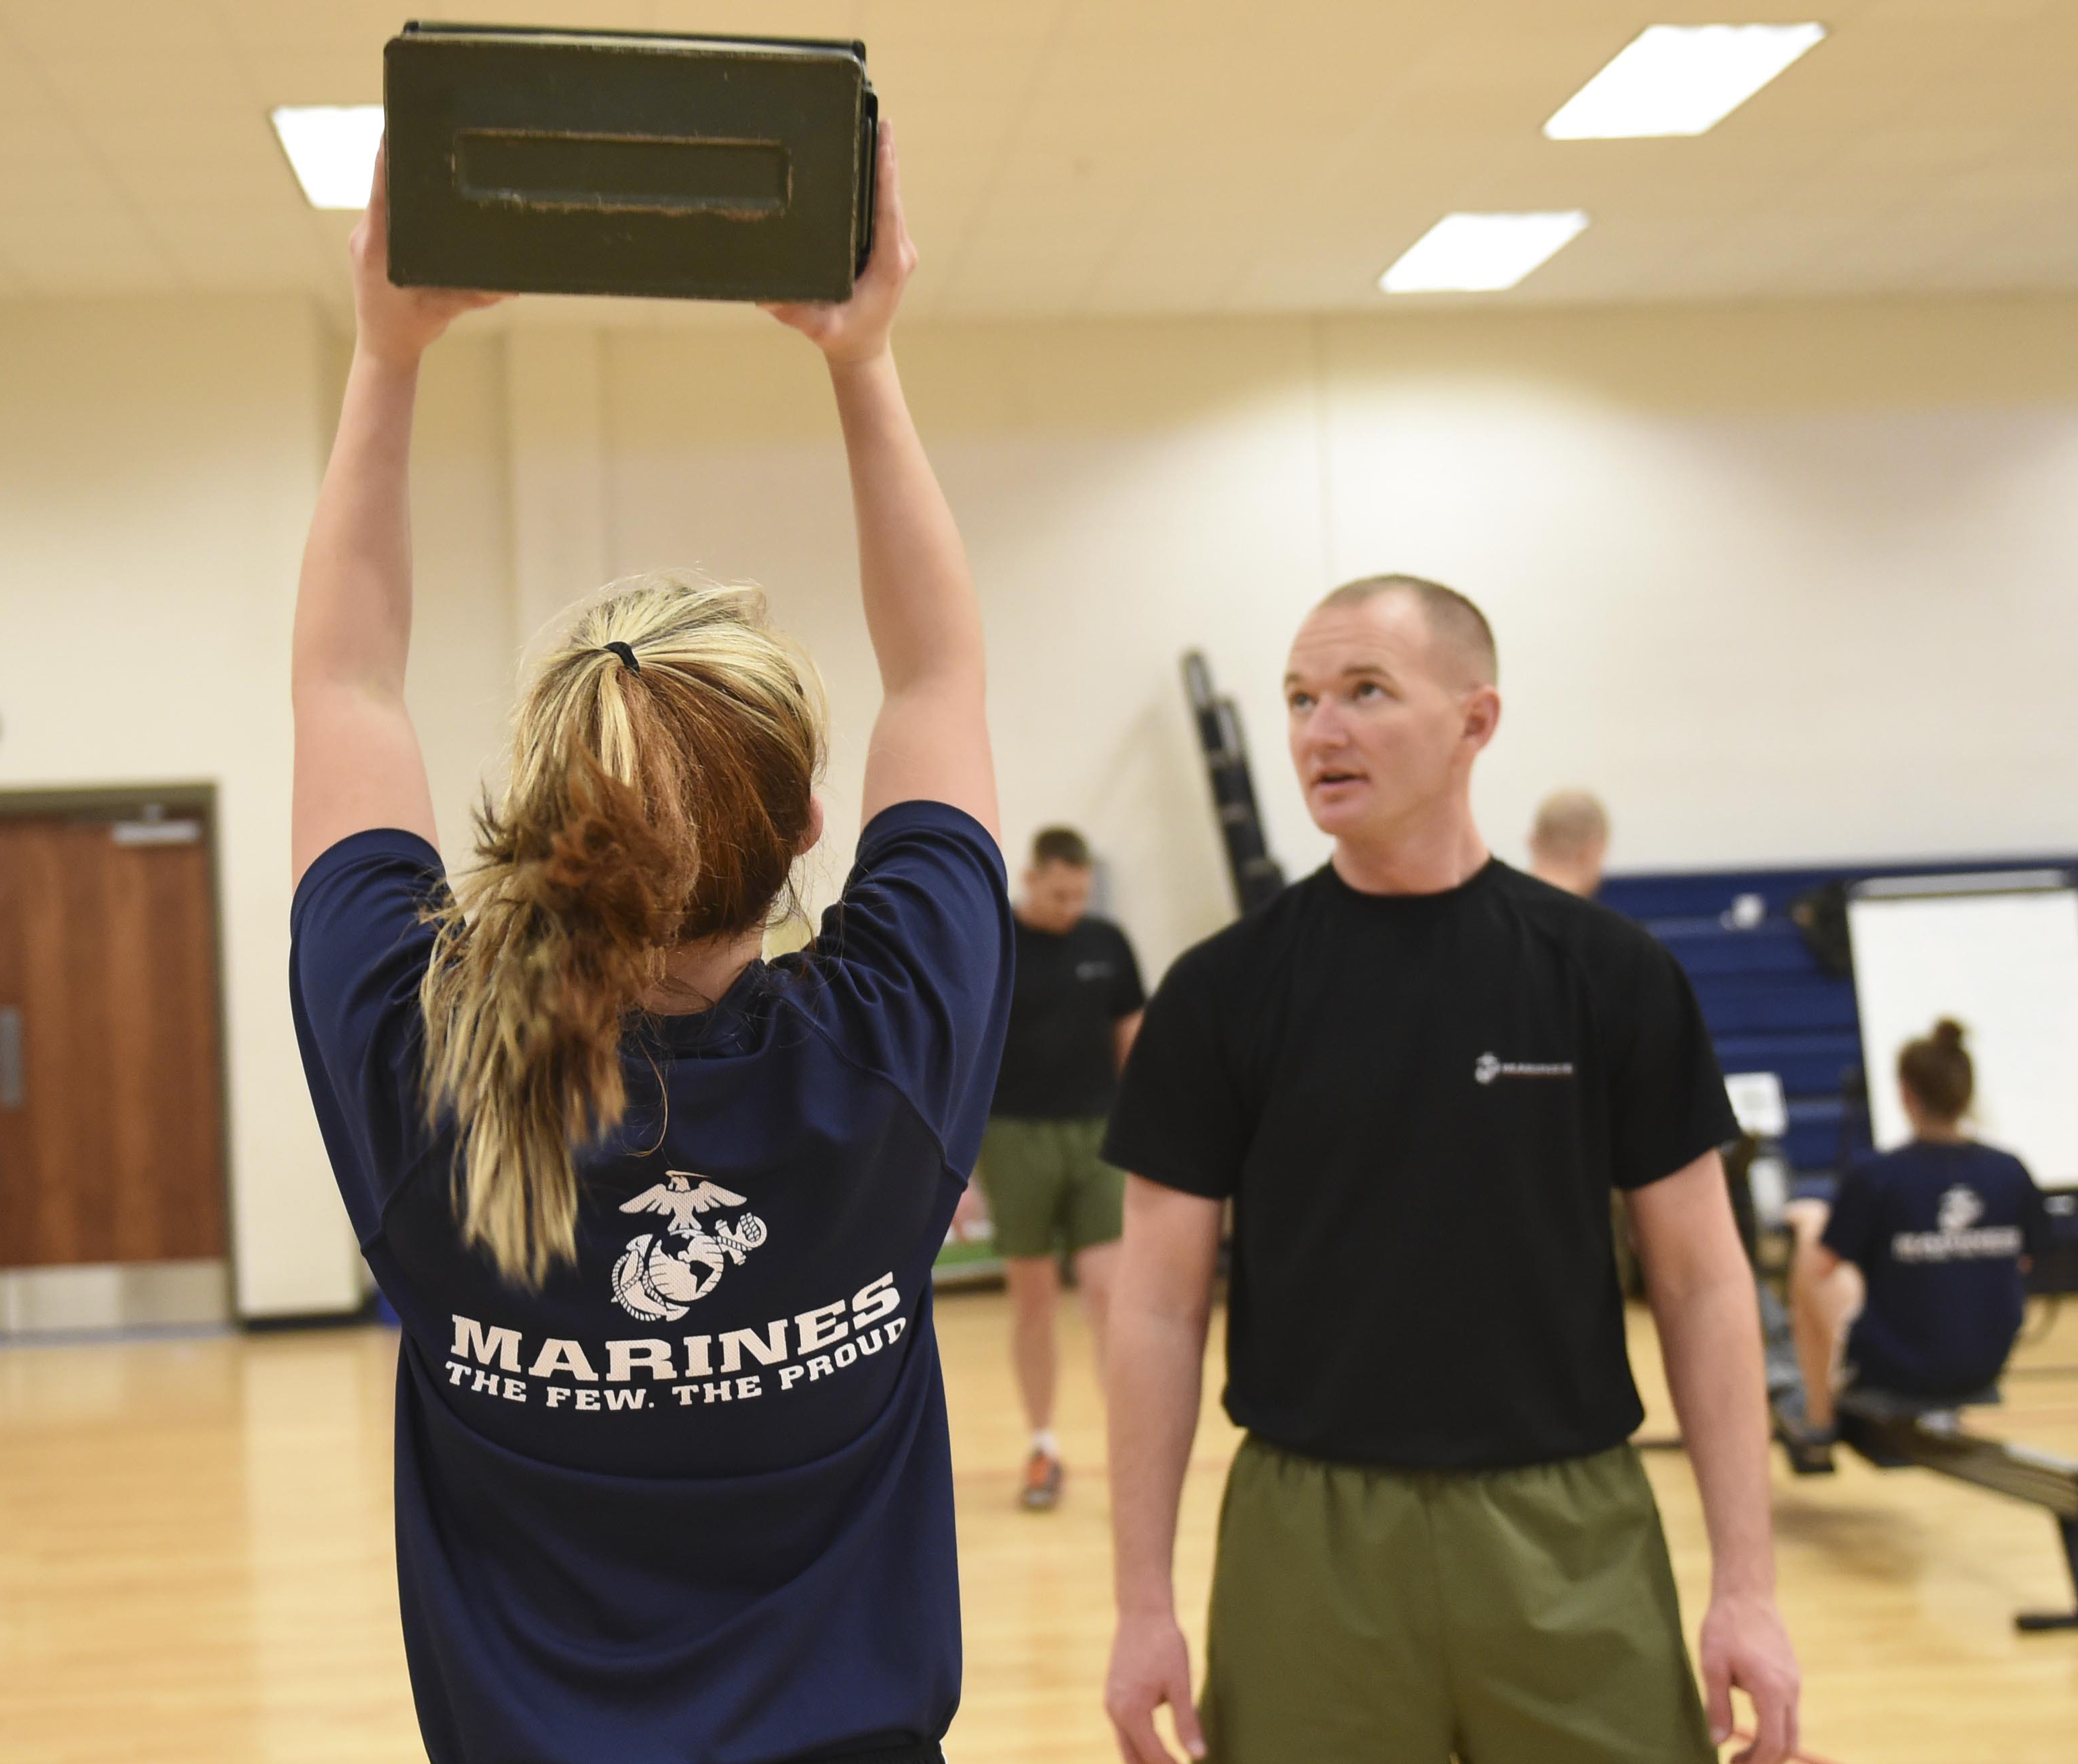 What is the Marine corps delayed entry program workout like?